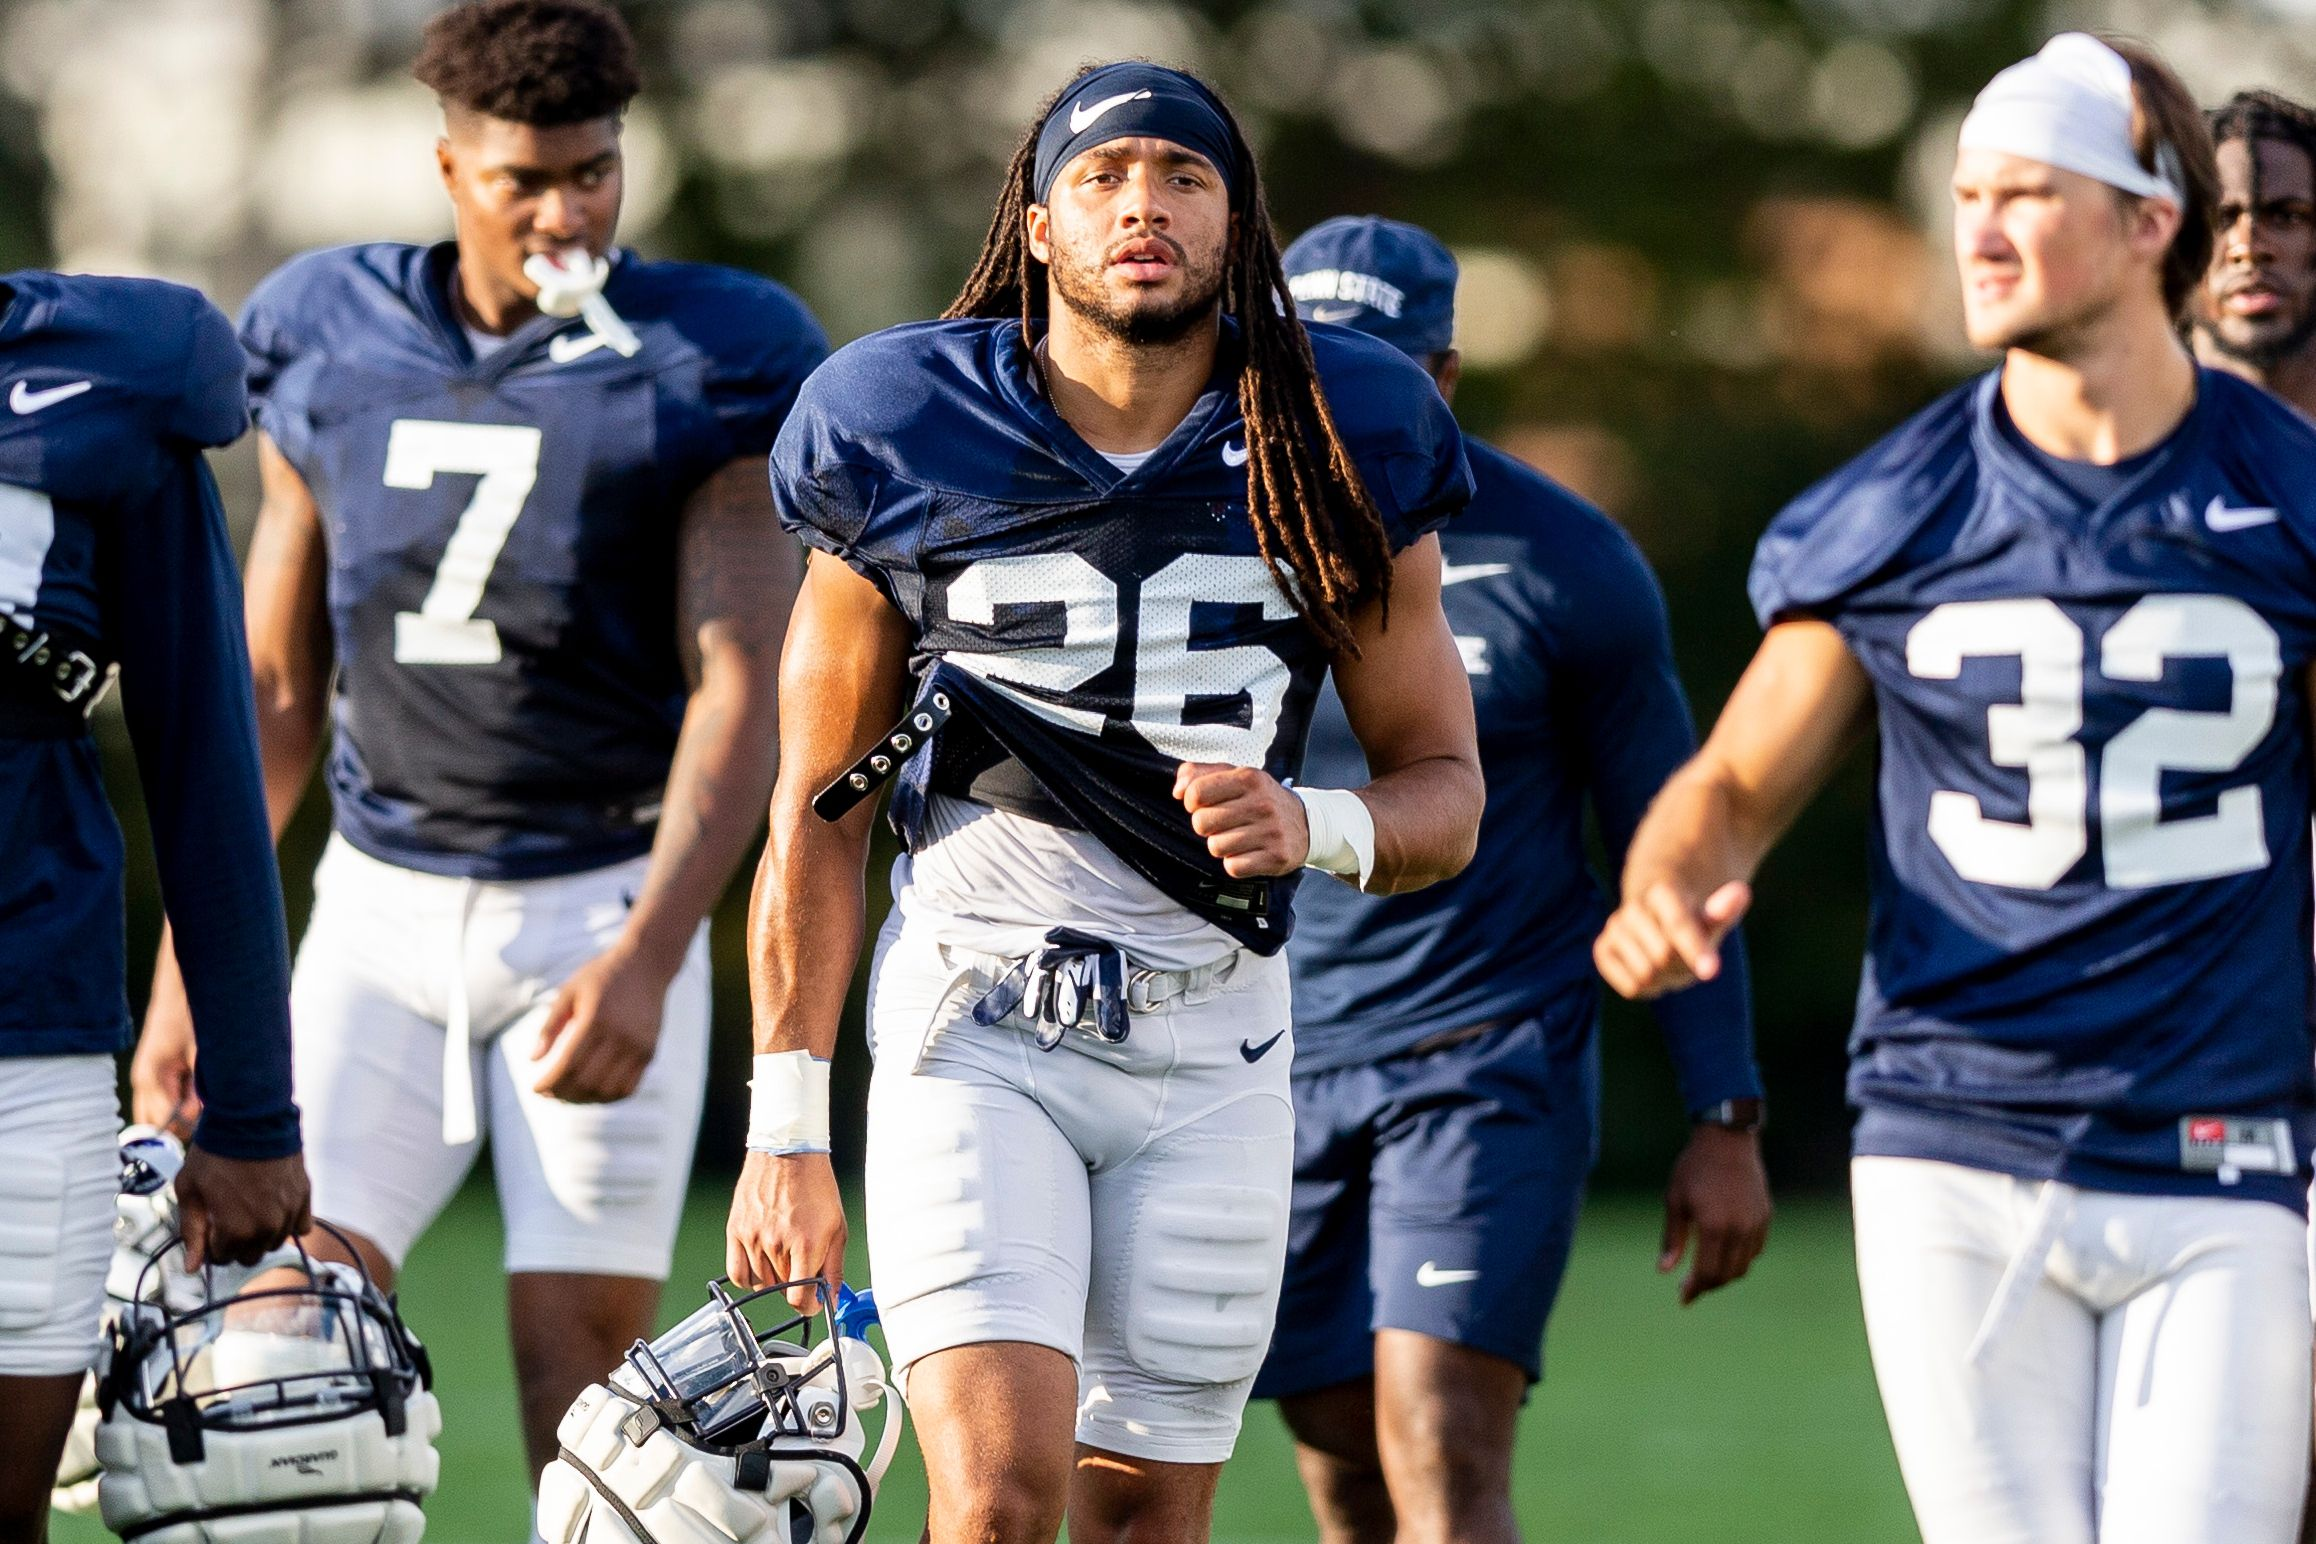 Penn State Football Fan Unhappy With Player S Dreadlocks Says He Stands By His Letter Report Pennlive Com